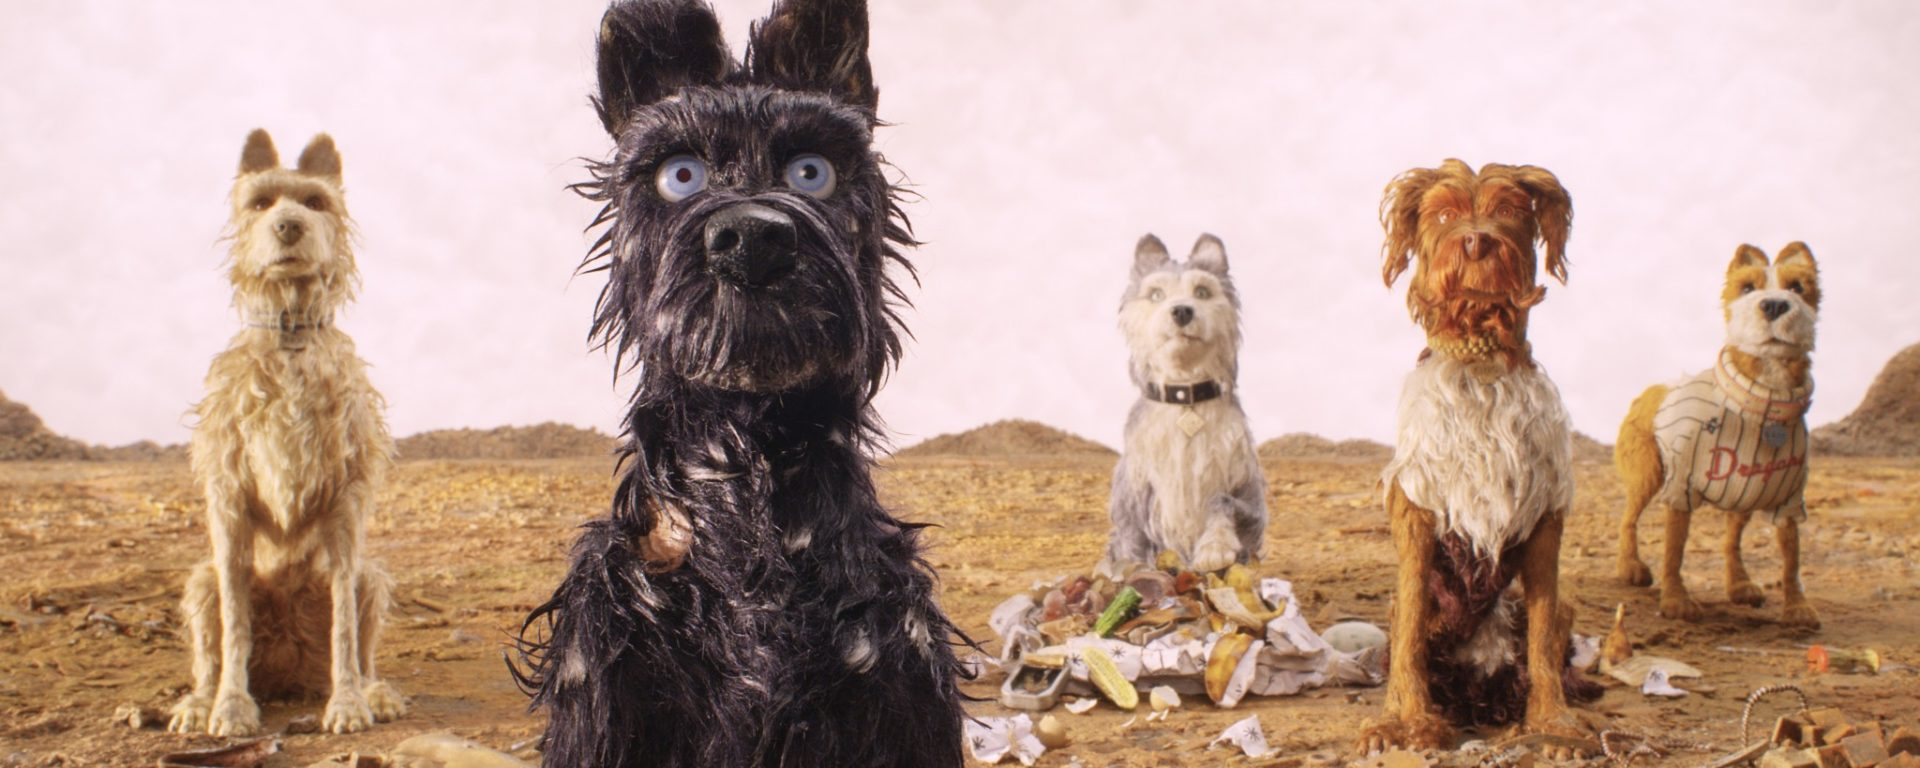 3-28_movies1_-_isle_of_dogs-cultural-hater